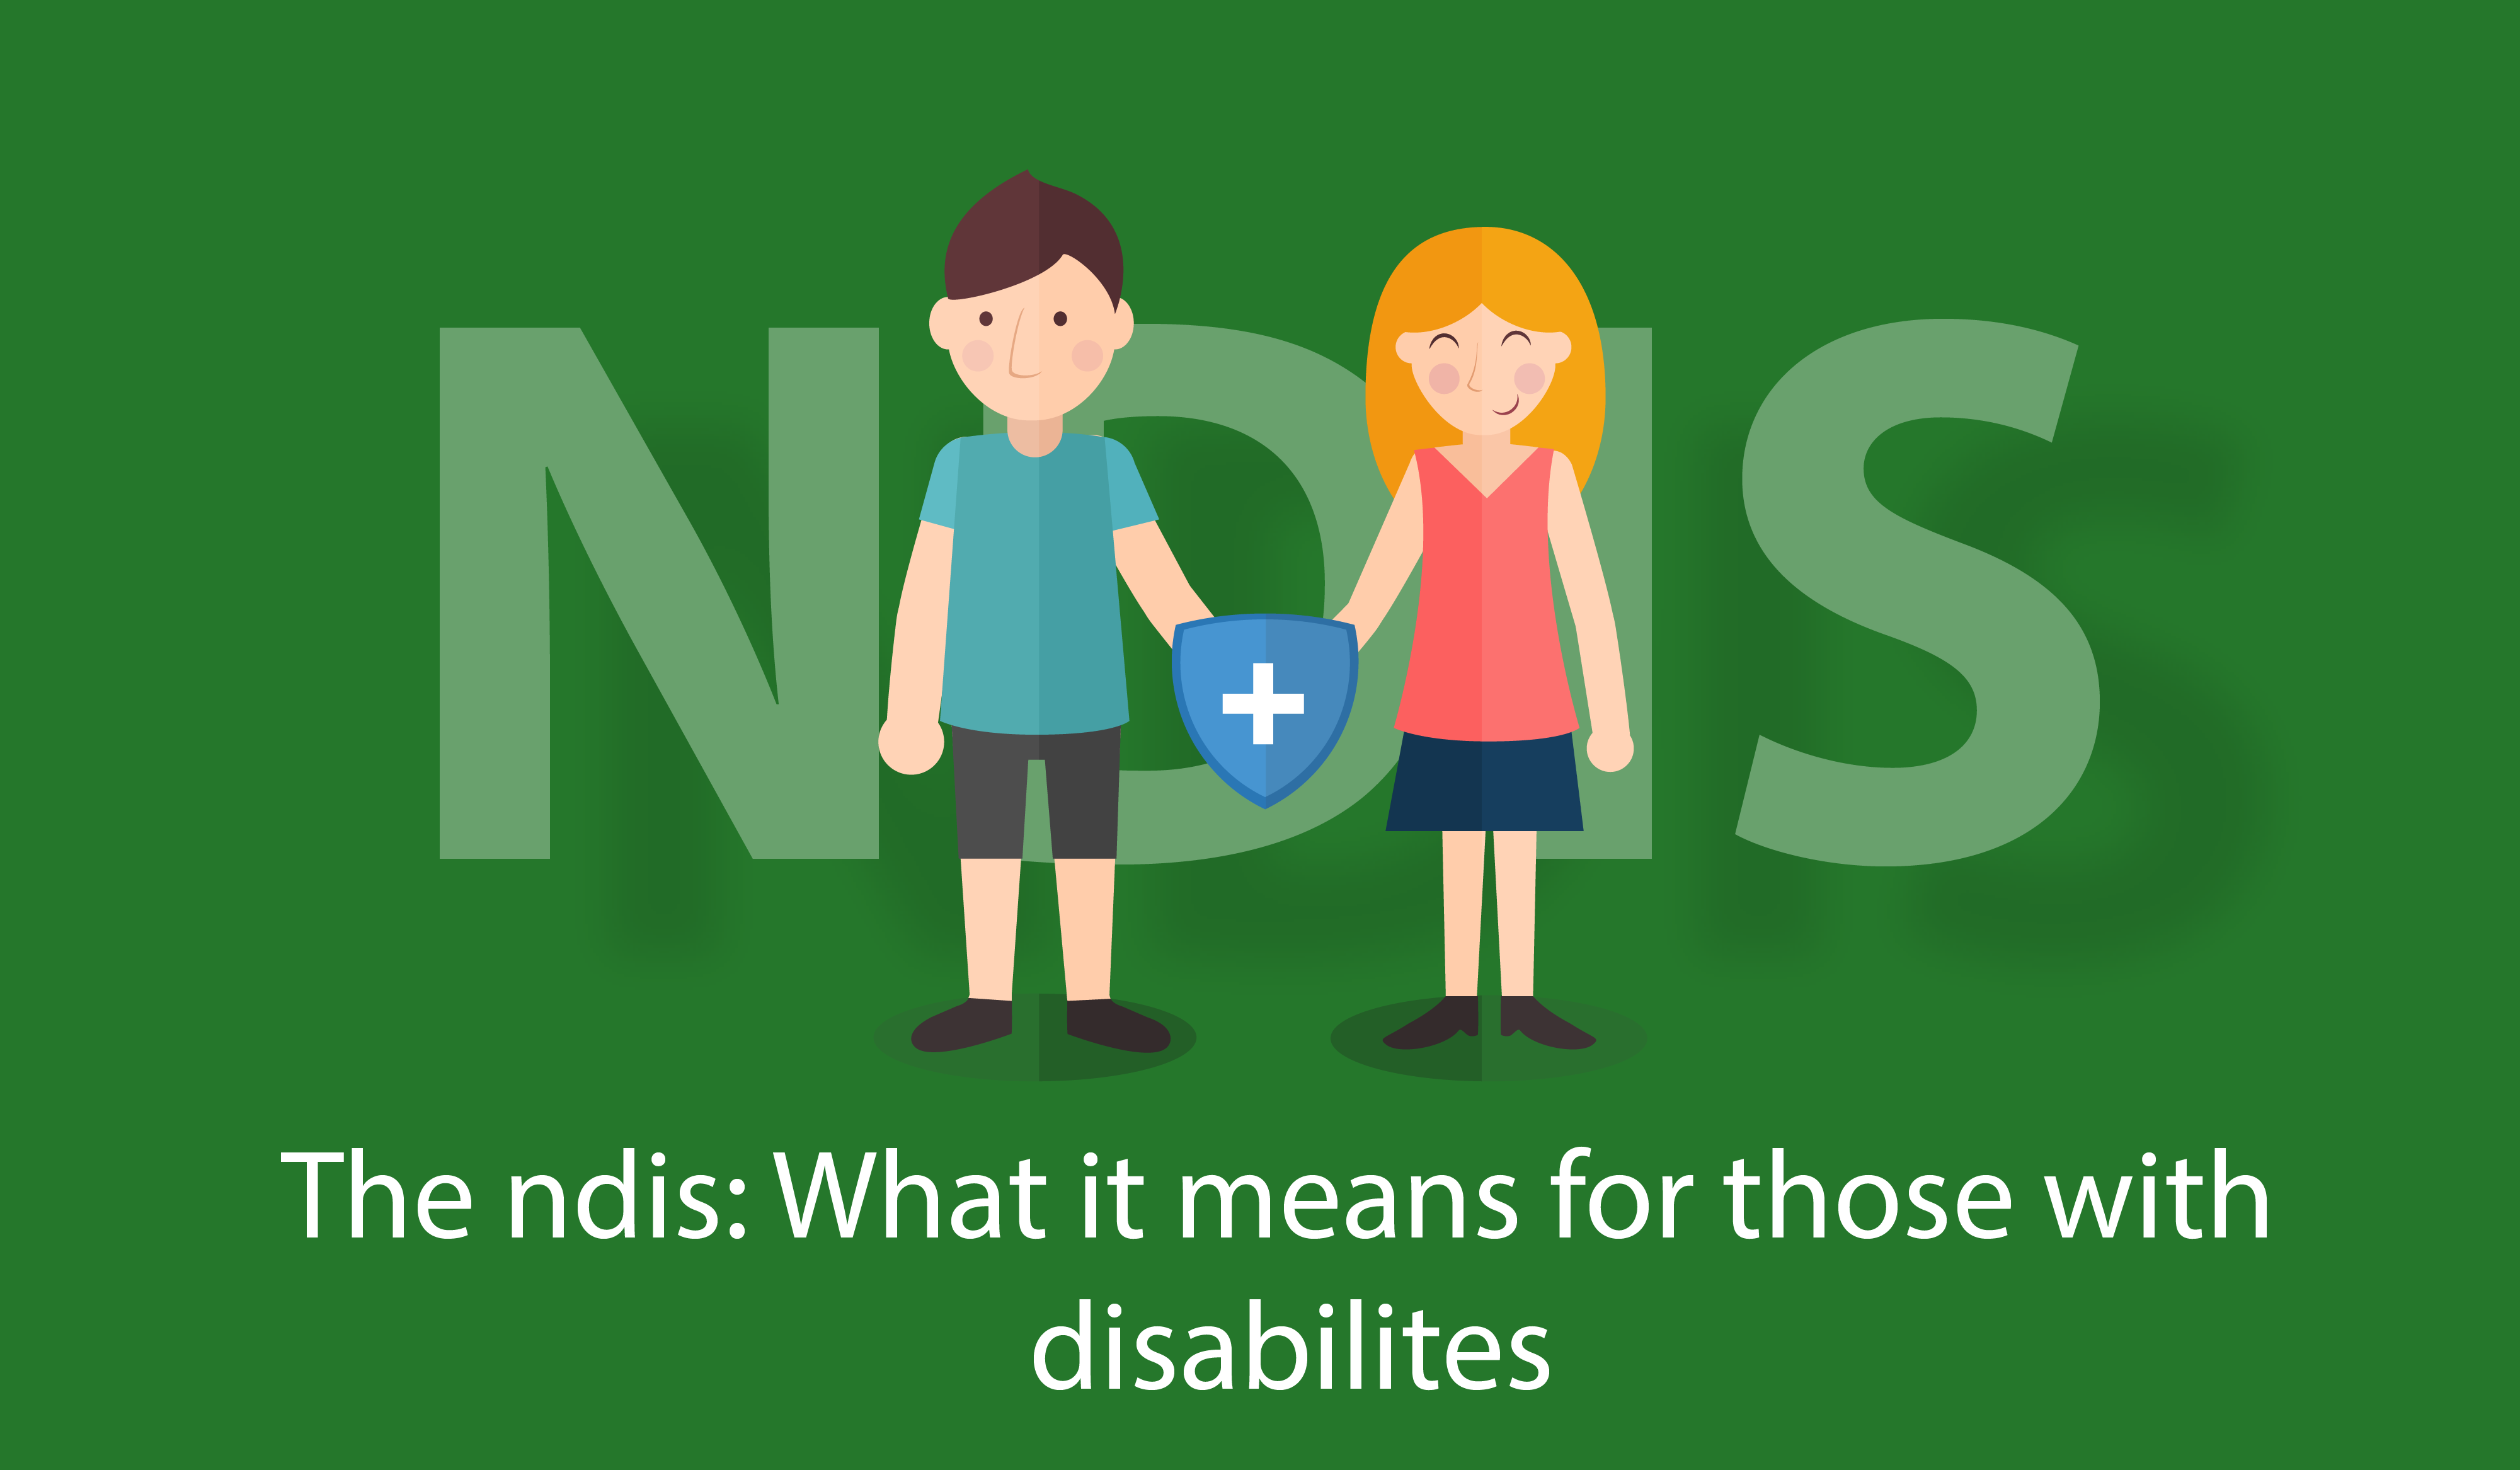 The NDIS: What it means for those with disabilities.